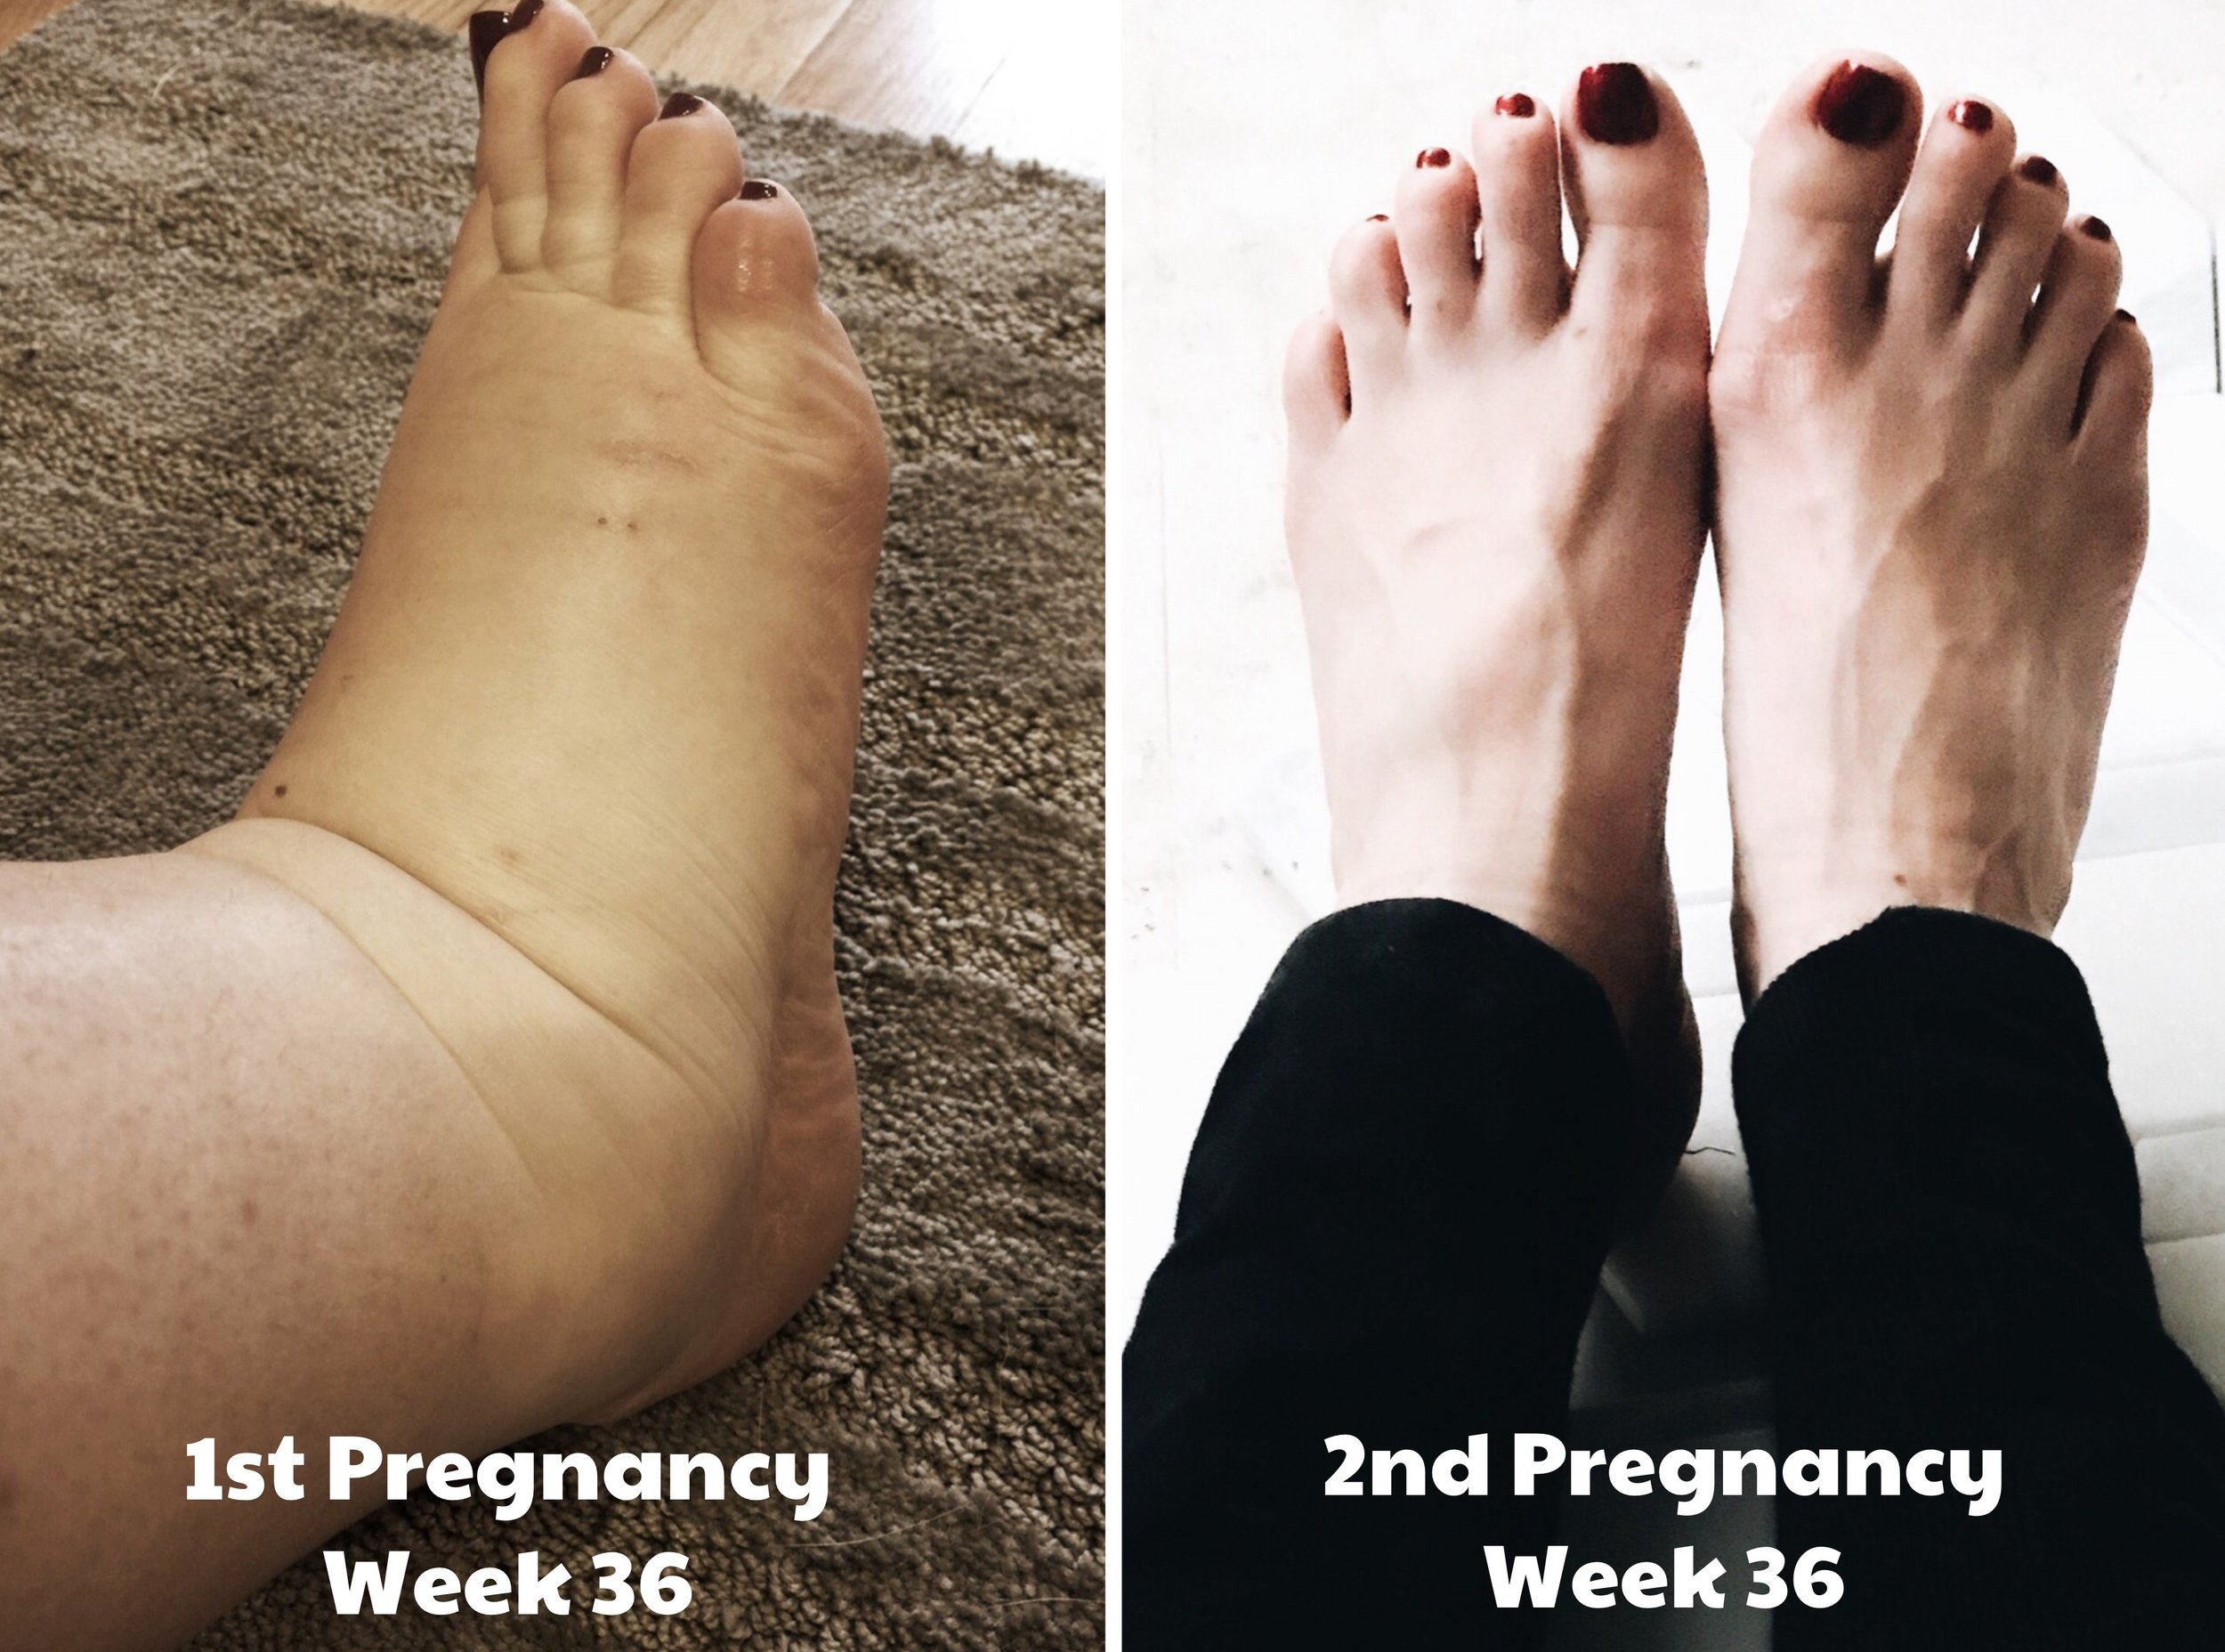 Pregnancy Swelling In my First Pregnancy vs. My Second Pregnancy. How one pregnancy can differ from another.